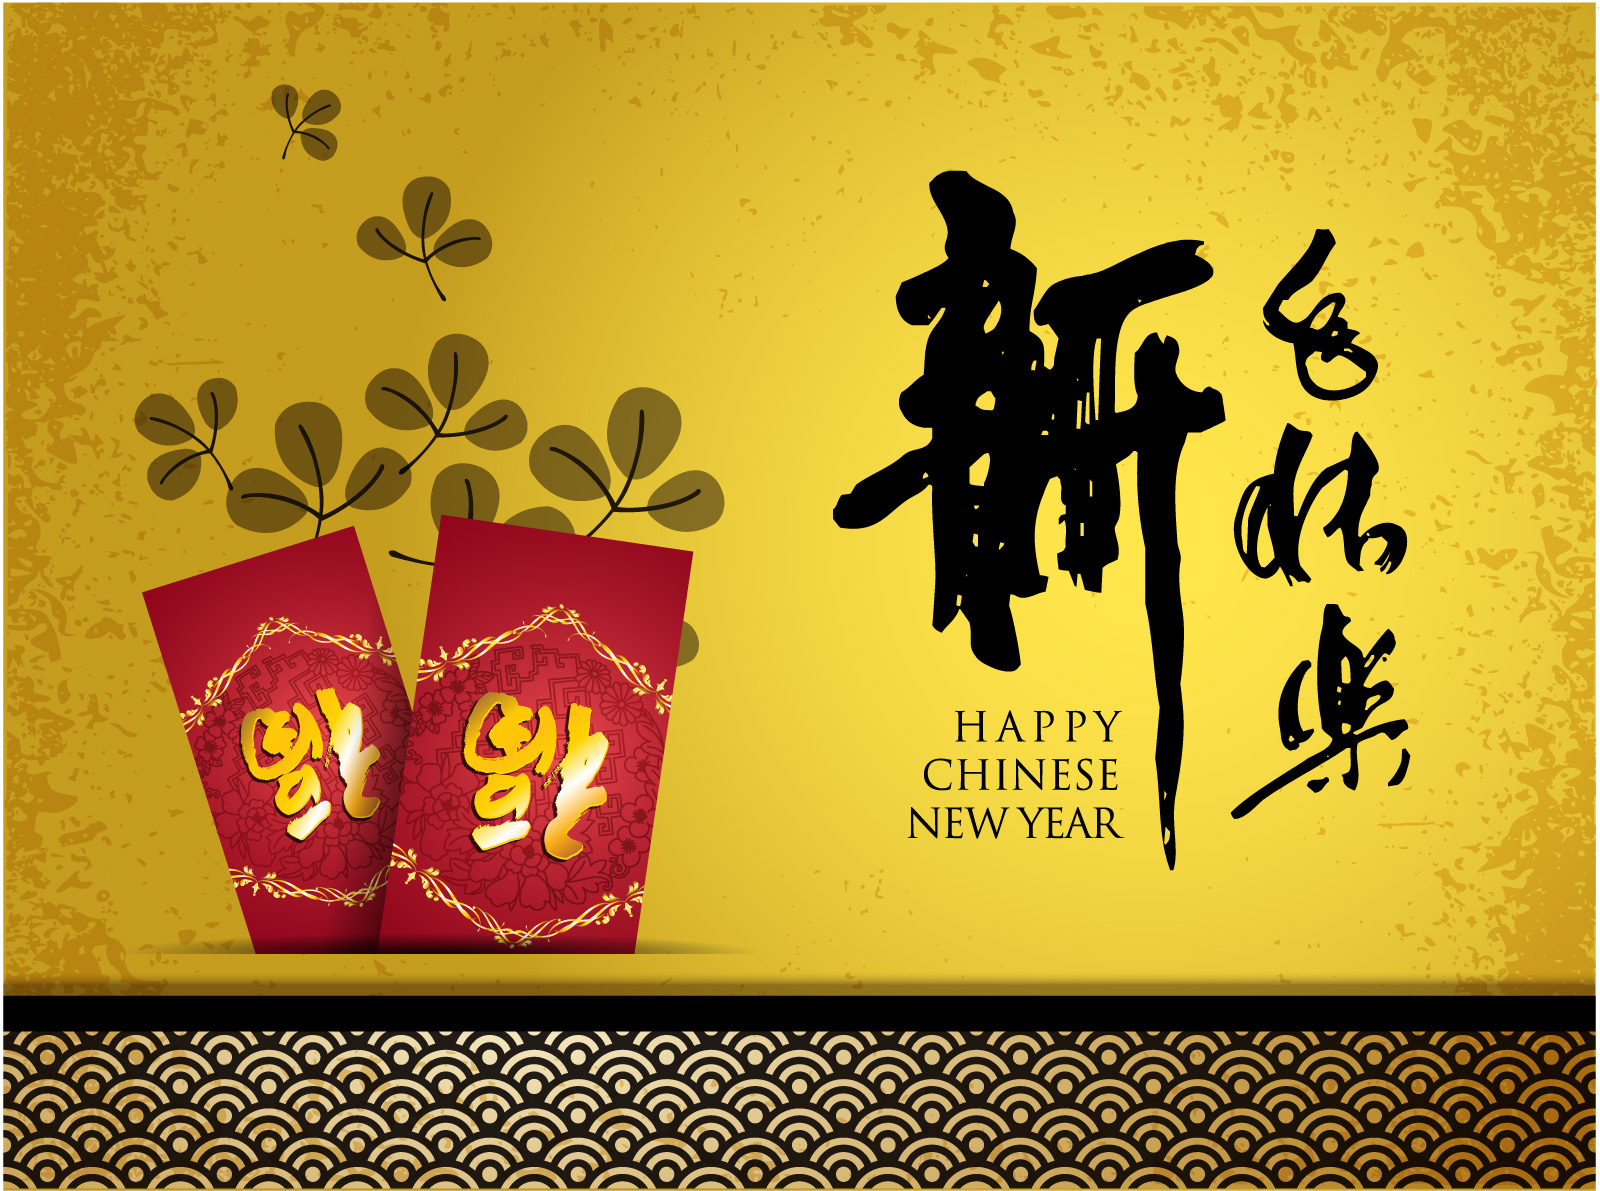 Happy Chinese New Year Greeting Card Design China Illustrations